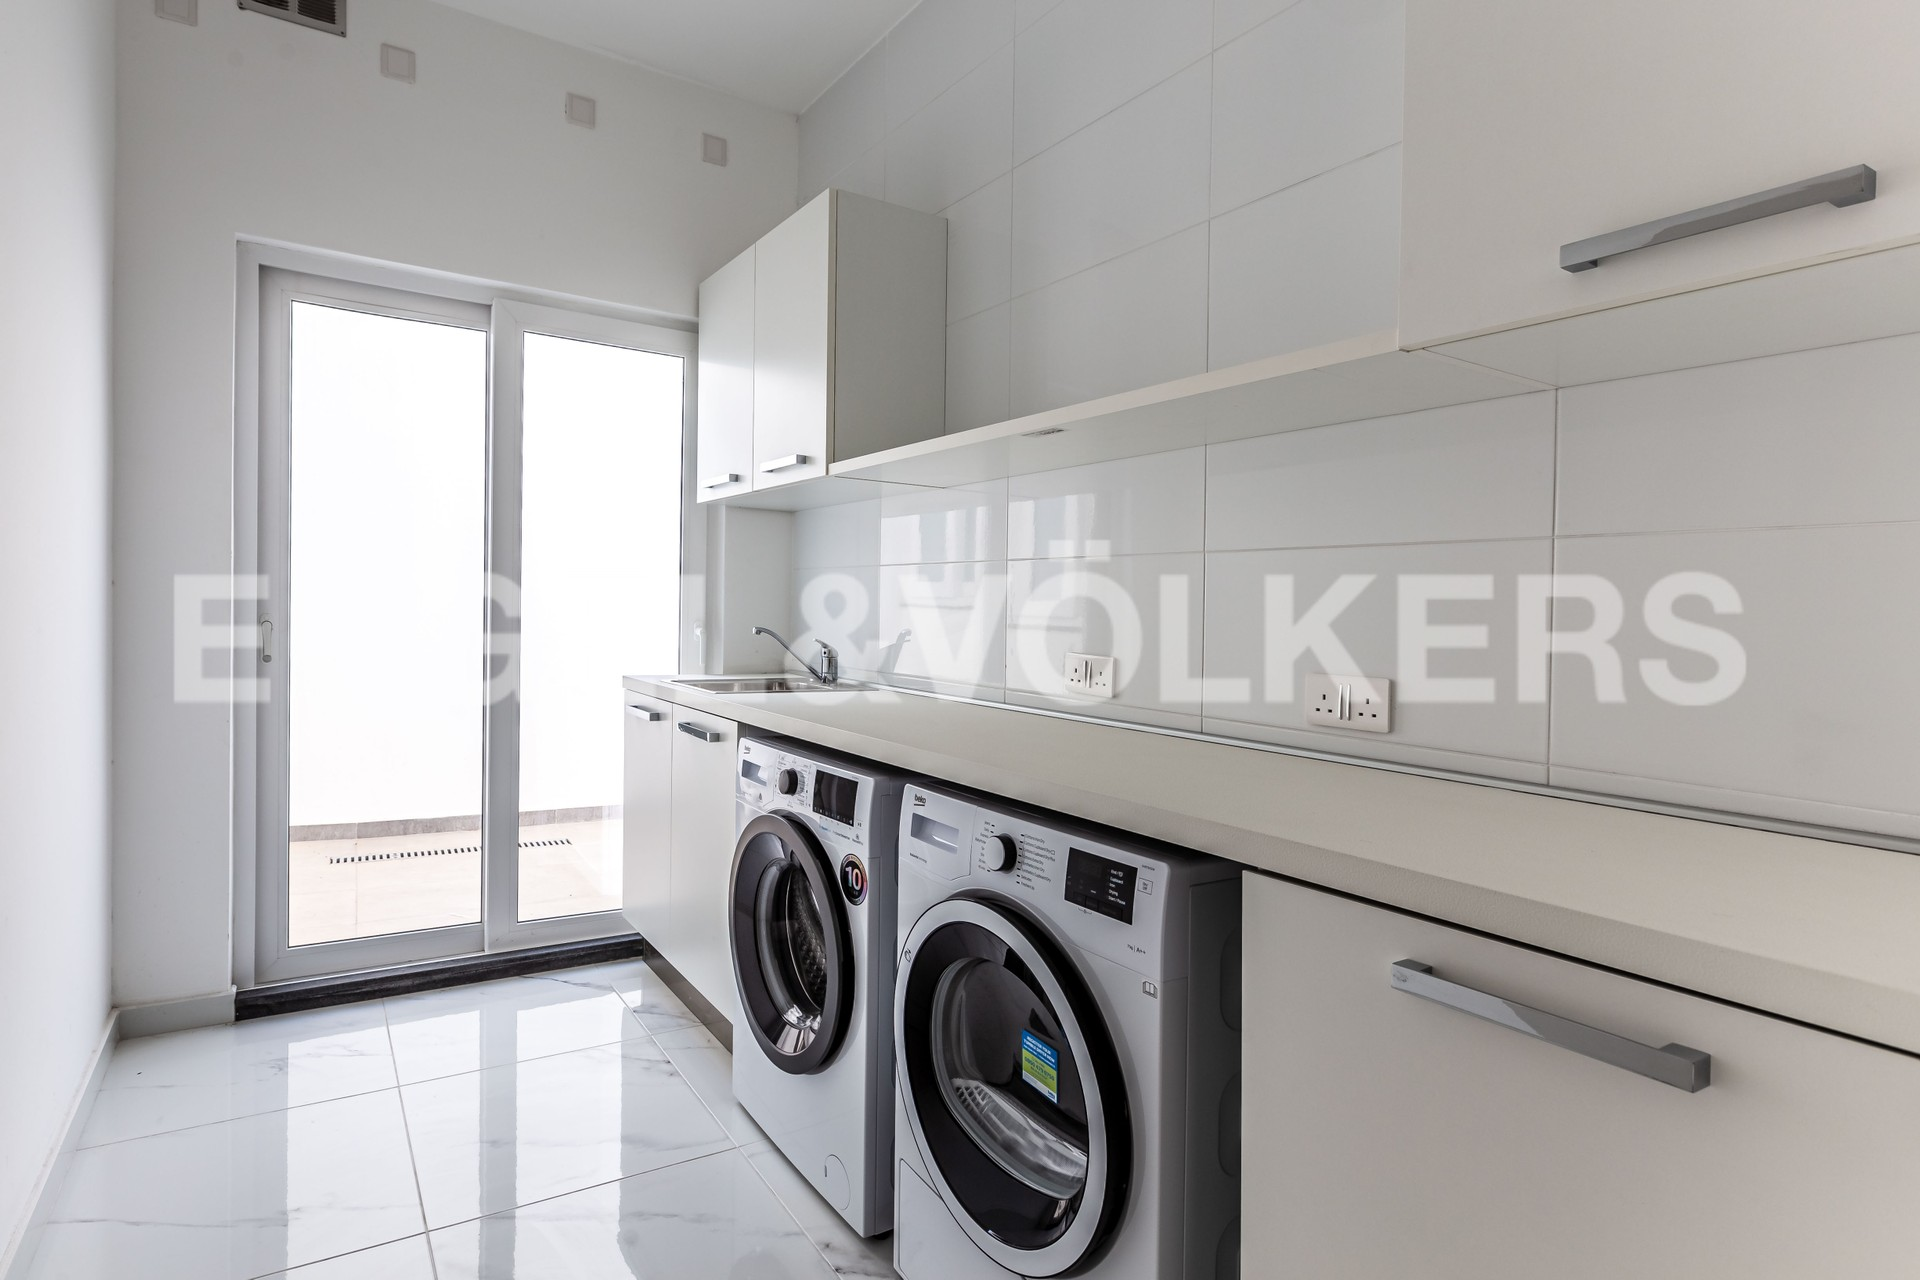 Apartment in Zejtun - Laundry Room